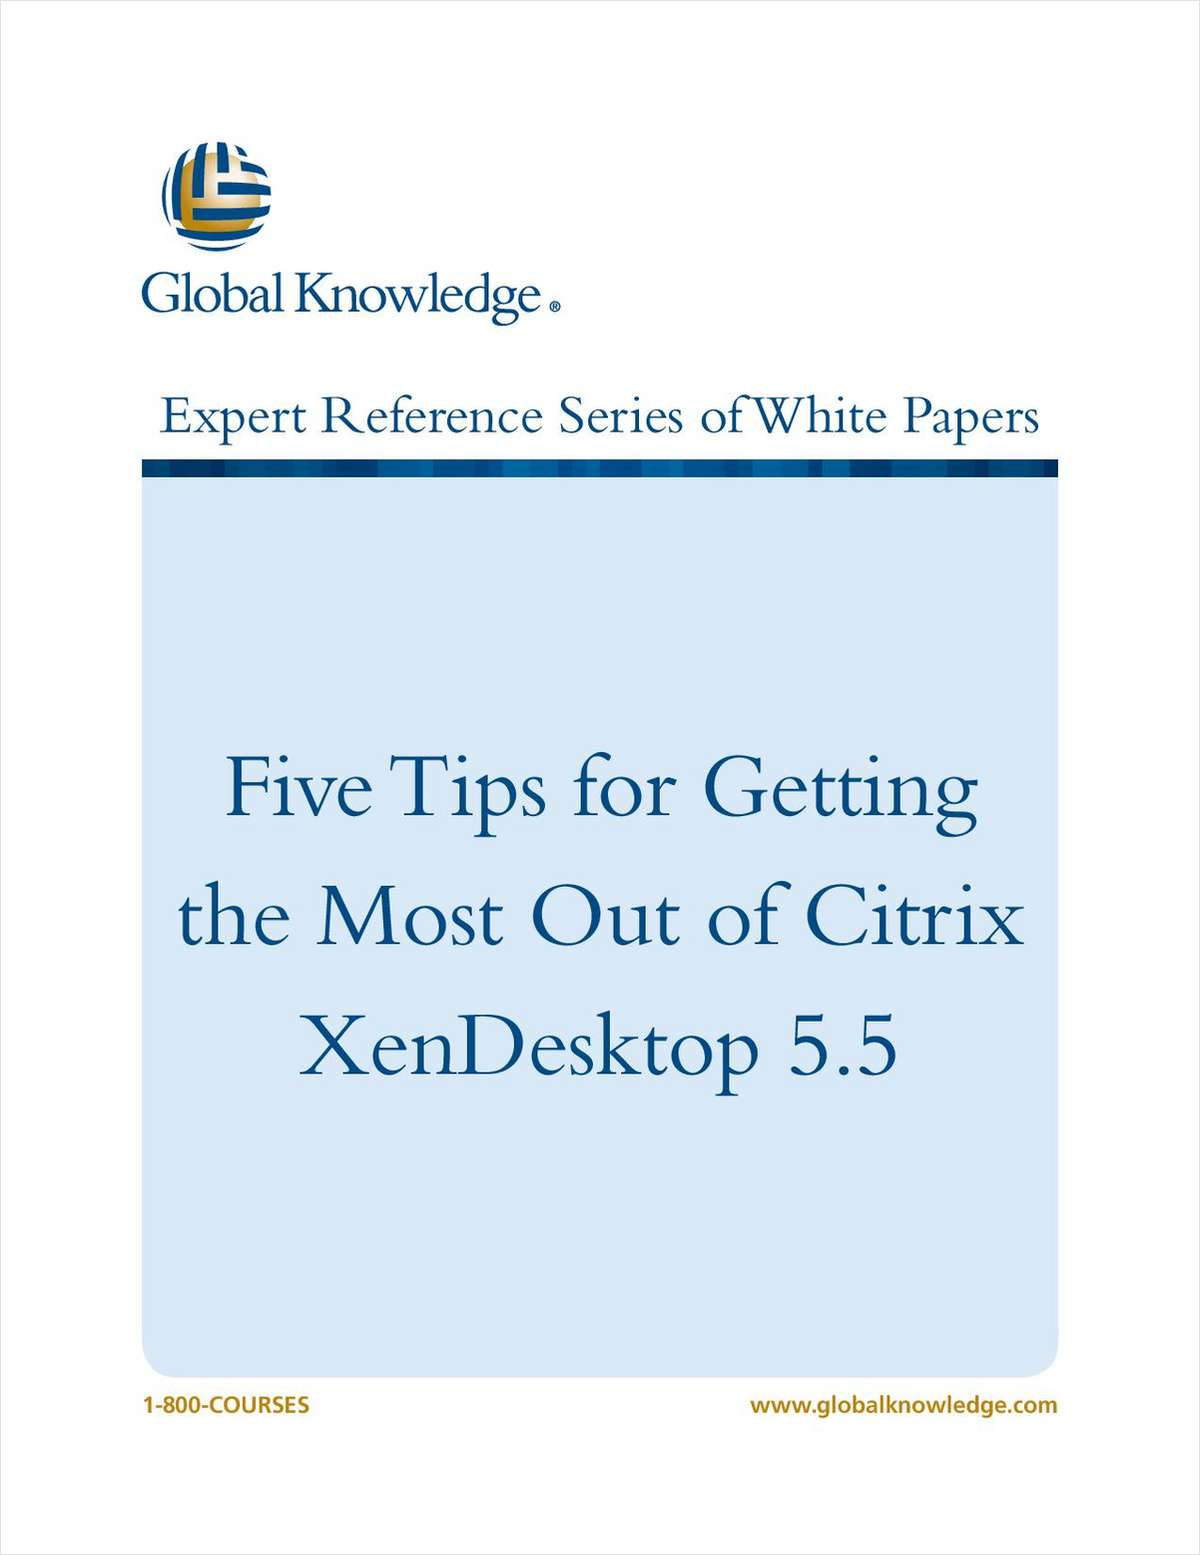 5 Tips for Getting the Most Out of Citrix XenDesktop 5.5